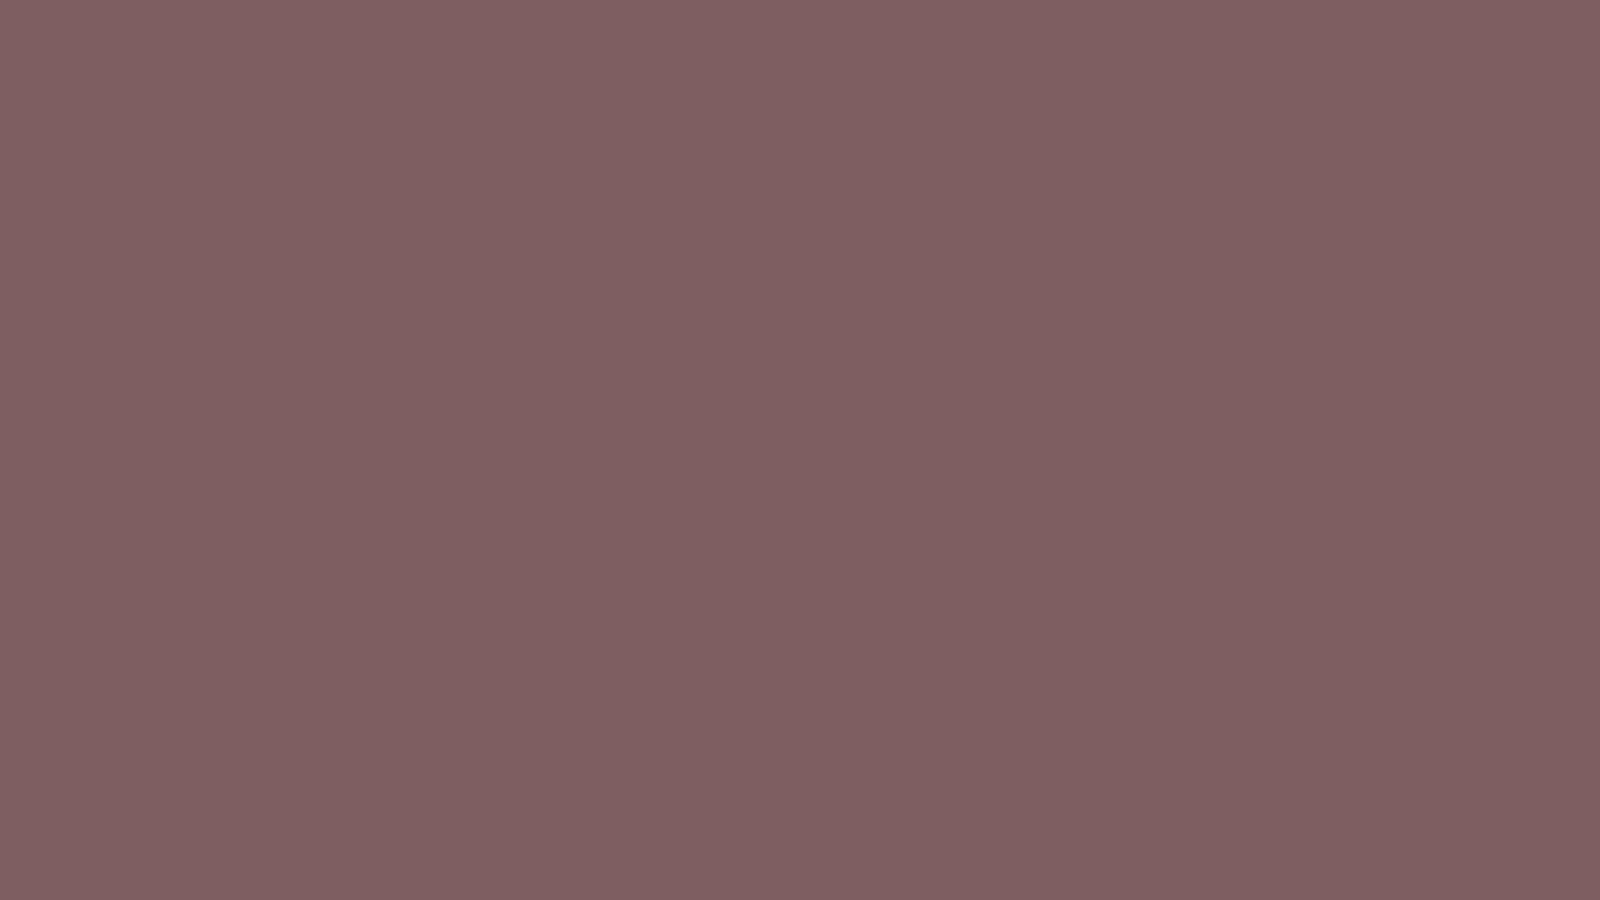 1600x900 Deep Taupe Solid Color Background